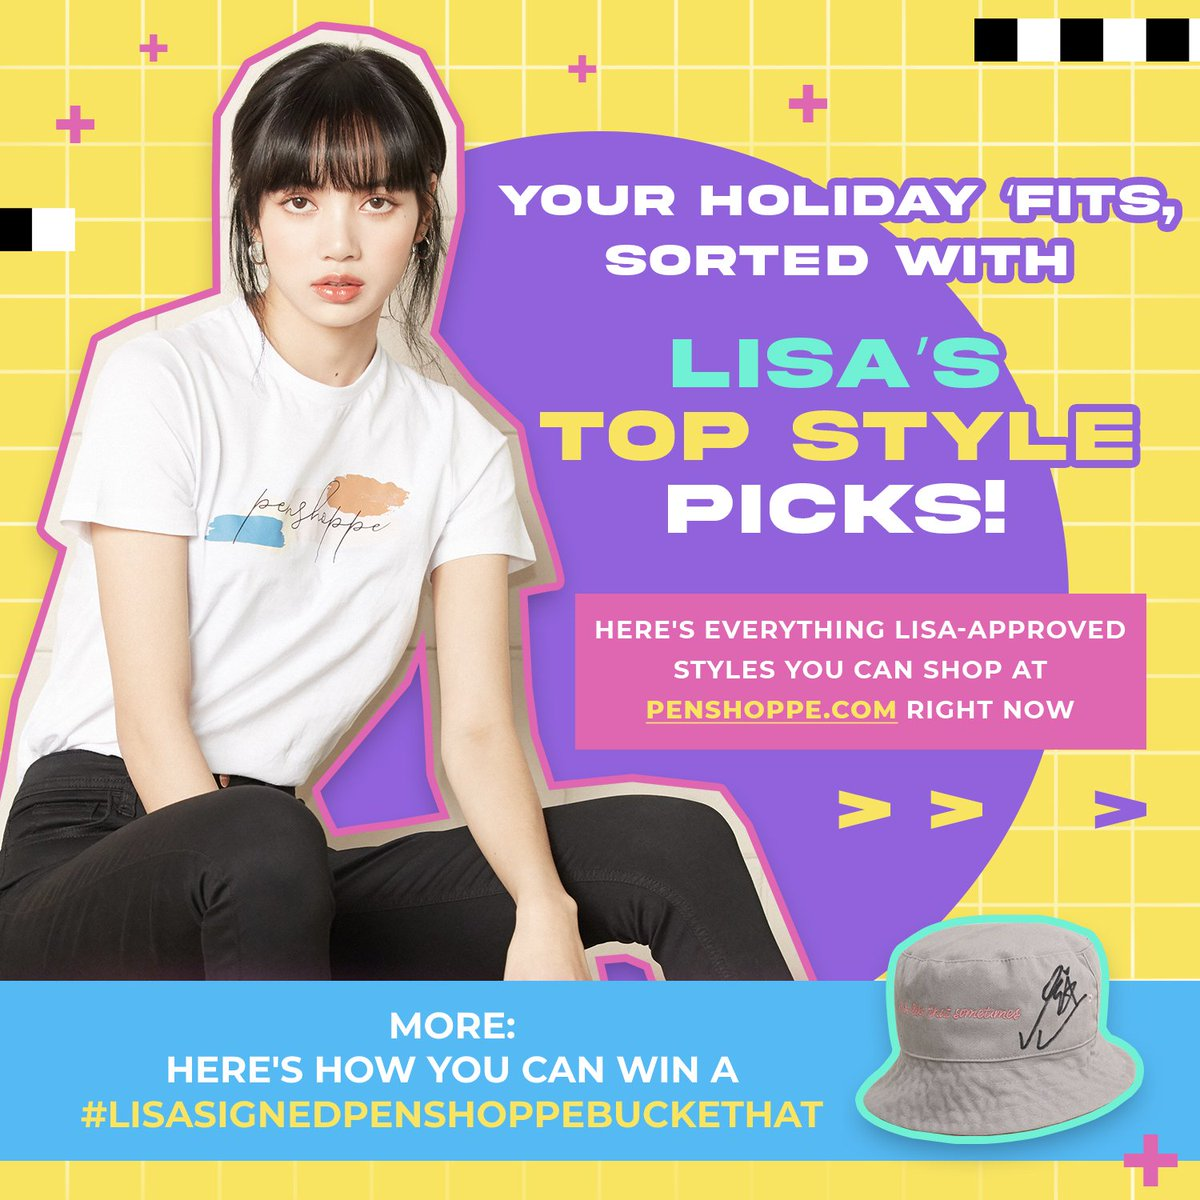 Still on a #LisaOnPenshoppeTV high?  Cop Lisa's Top Style picks (as seen on Penshoppe TV) at ! 🤩  Shop her collection here: